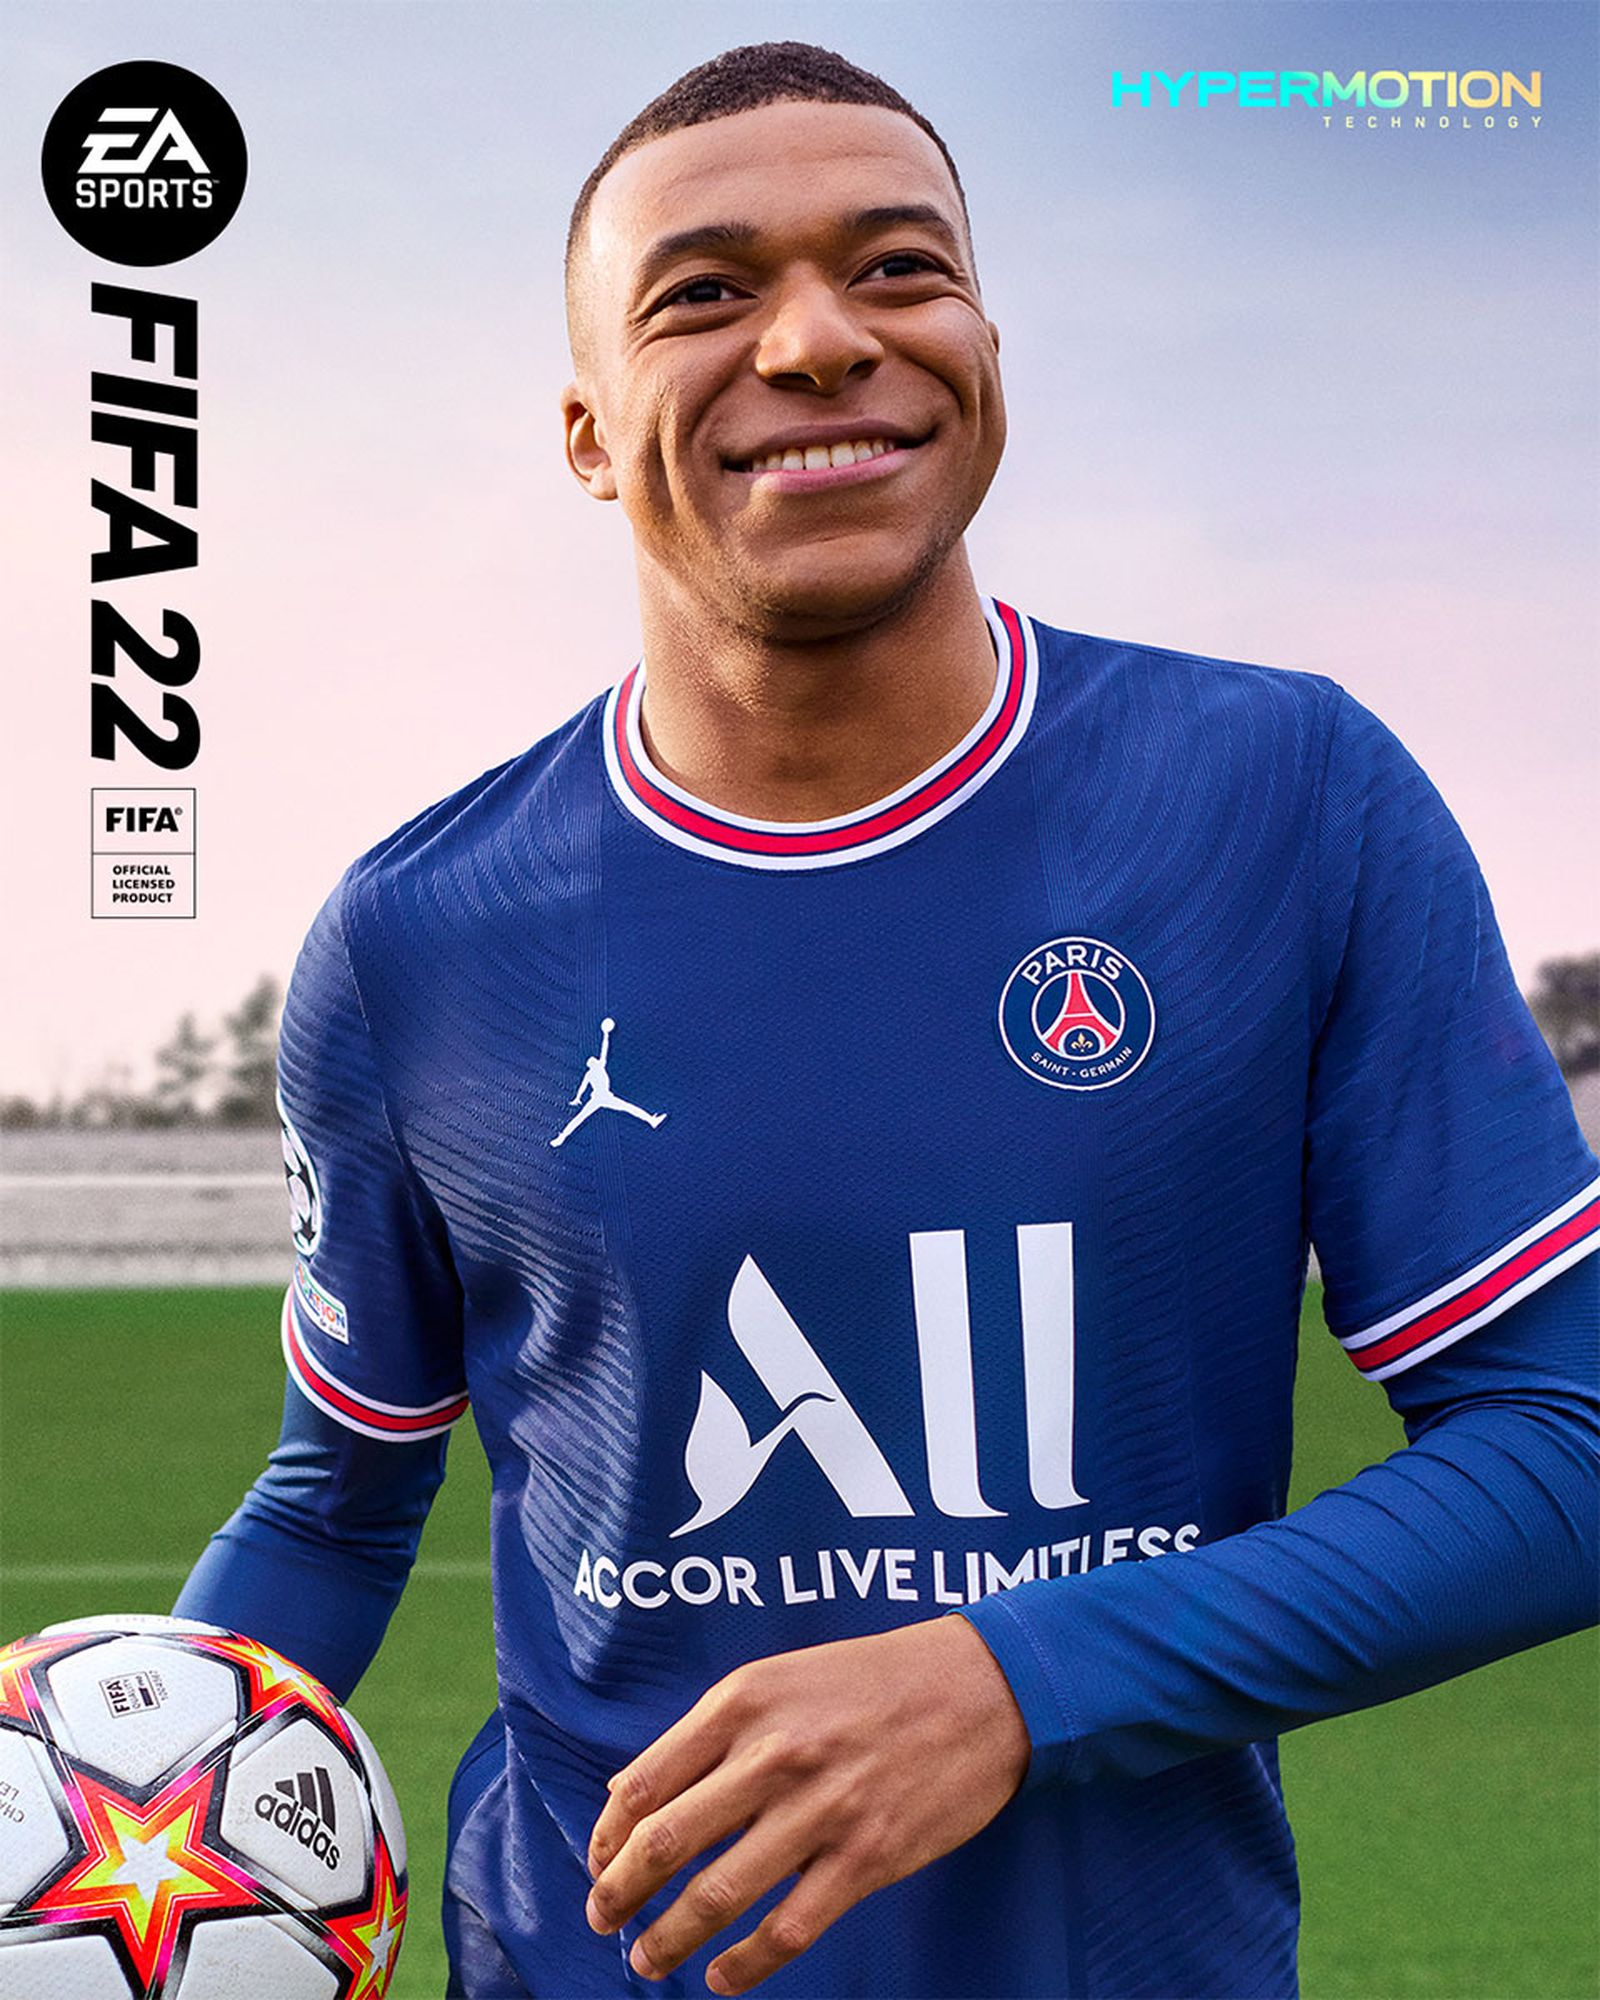 kylian-mbappe-fifa-22-cover-athlete-02